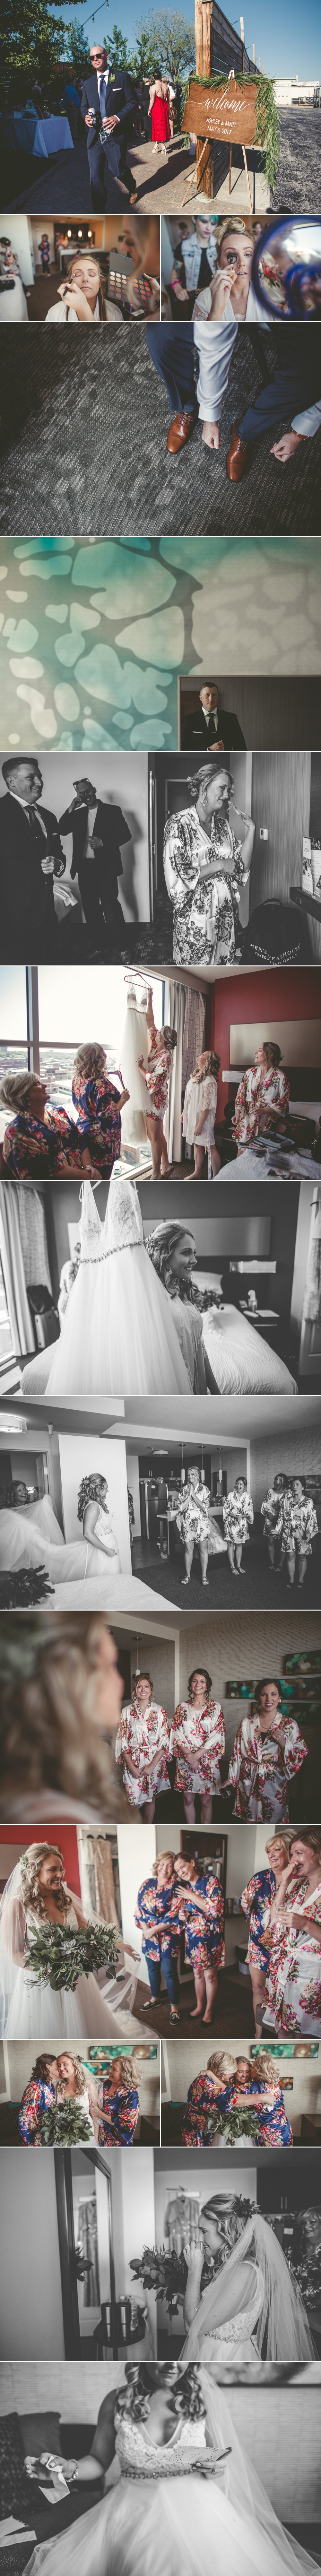 jason_domingues_photography_best_kansas_city_wedding_photographer_kc_weddings_the_guild0001